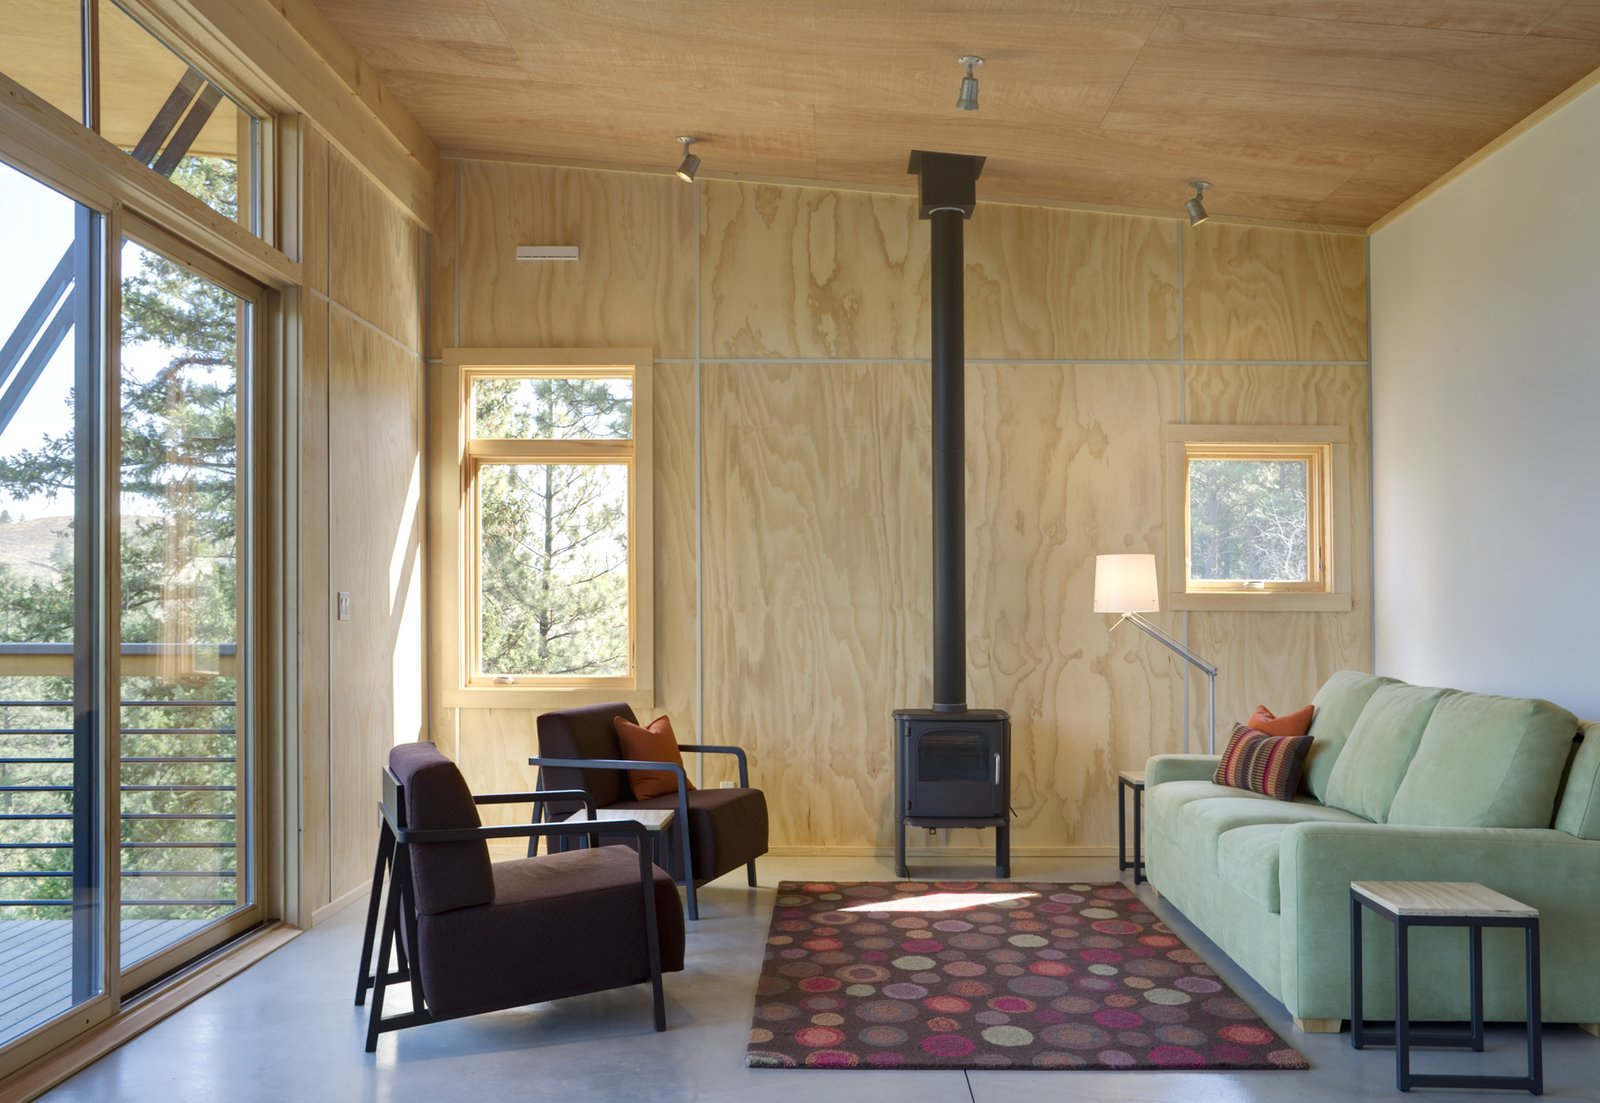 While the home is well insulated on all sides, the hearth can provide extra warmth when necessary.  Simple Cabin Embraces Its Mountain Setting by Zachary Edelson